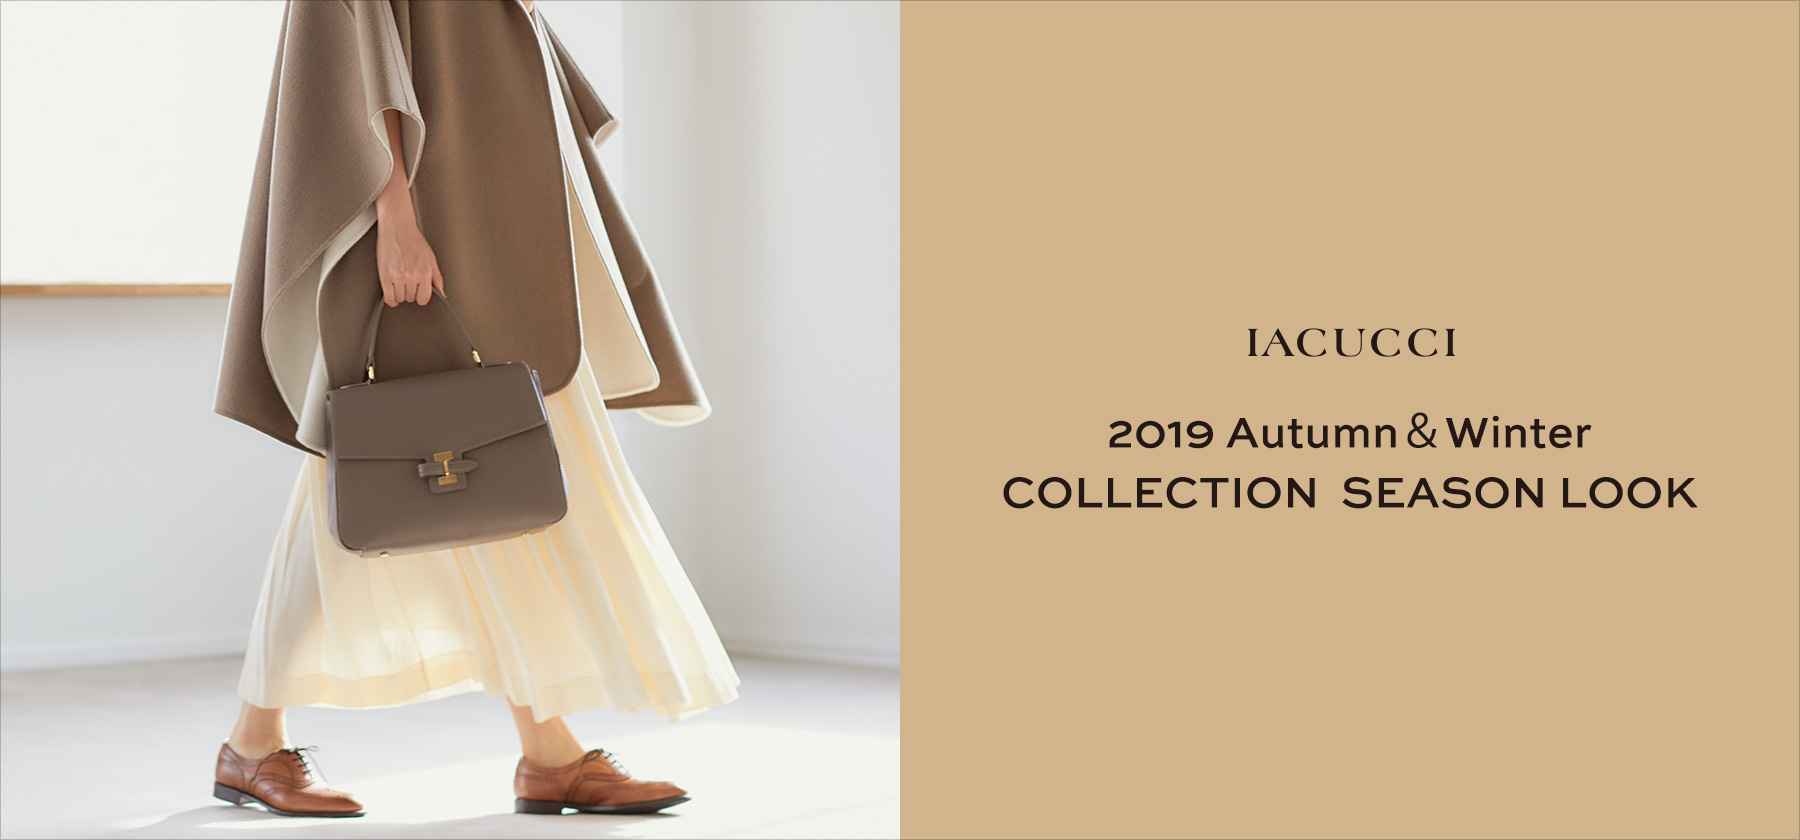 2019 AUTUMN & WINTER COLLECTION STYLING LOOK